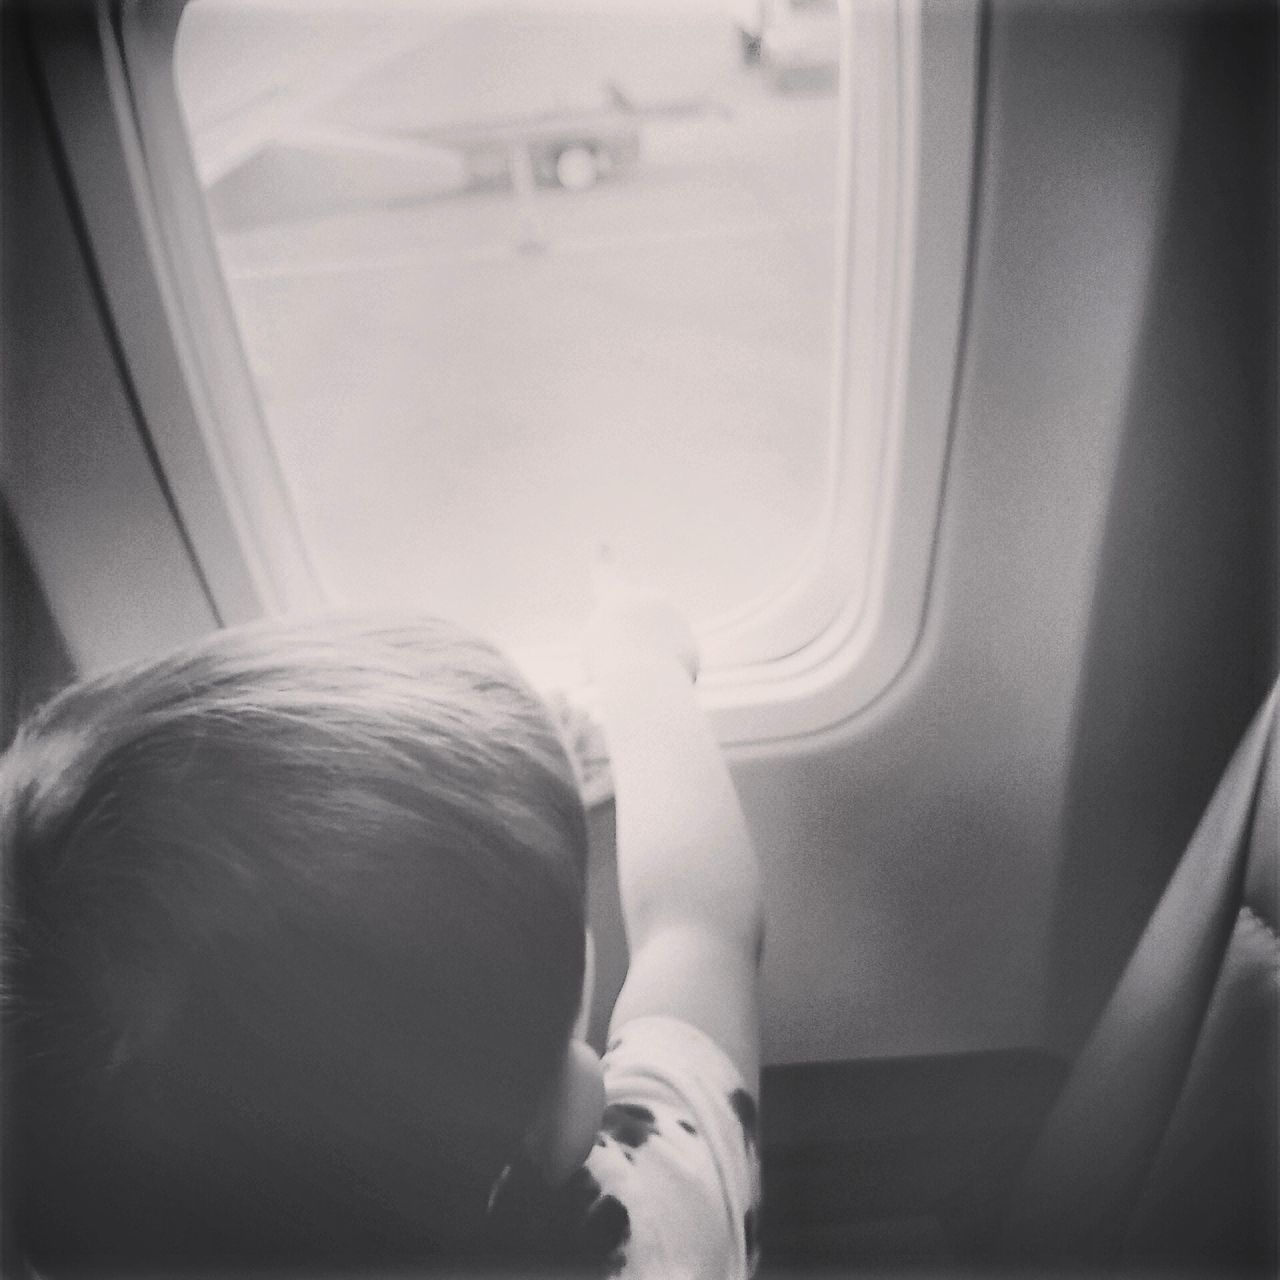 vehicle interior, transportation, one person, childhood, vehicle seat, real people, window, journey, mode of transport, sitting, airplane, indoors, day, close-up, people